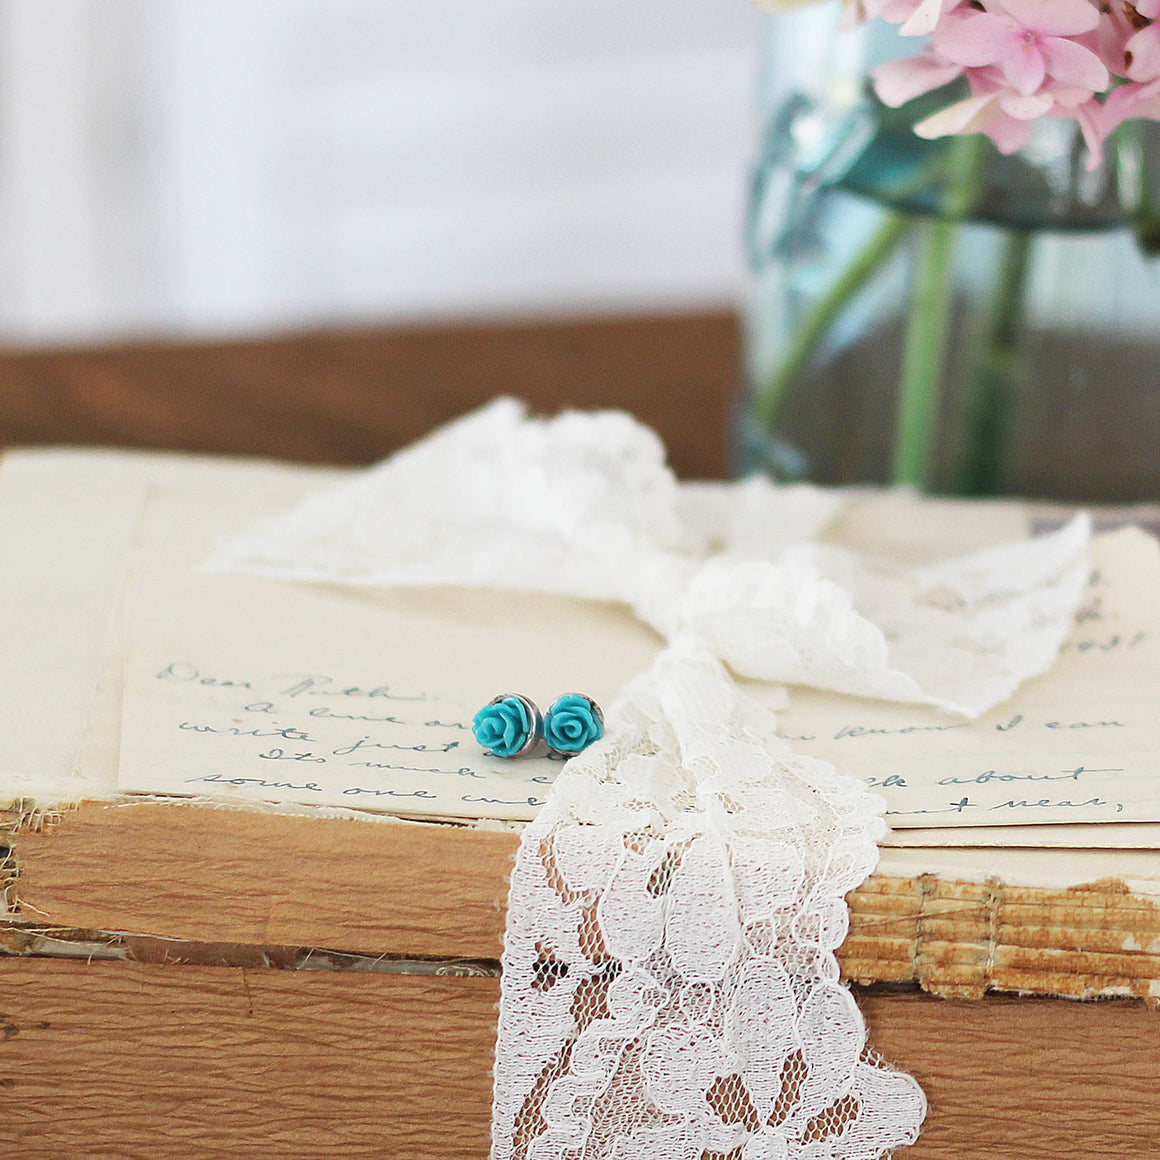 Post Rose Earrings Teal laying on vintage ribbon tied vintage books